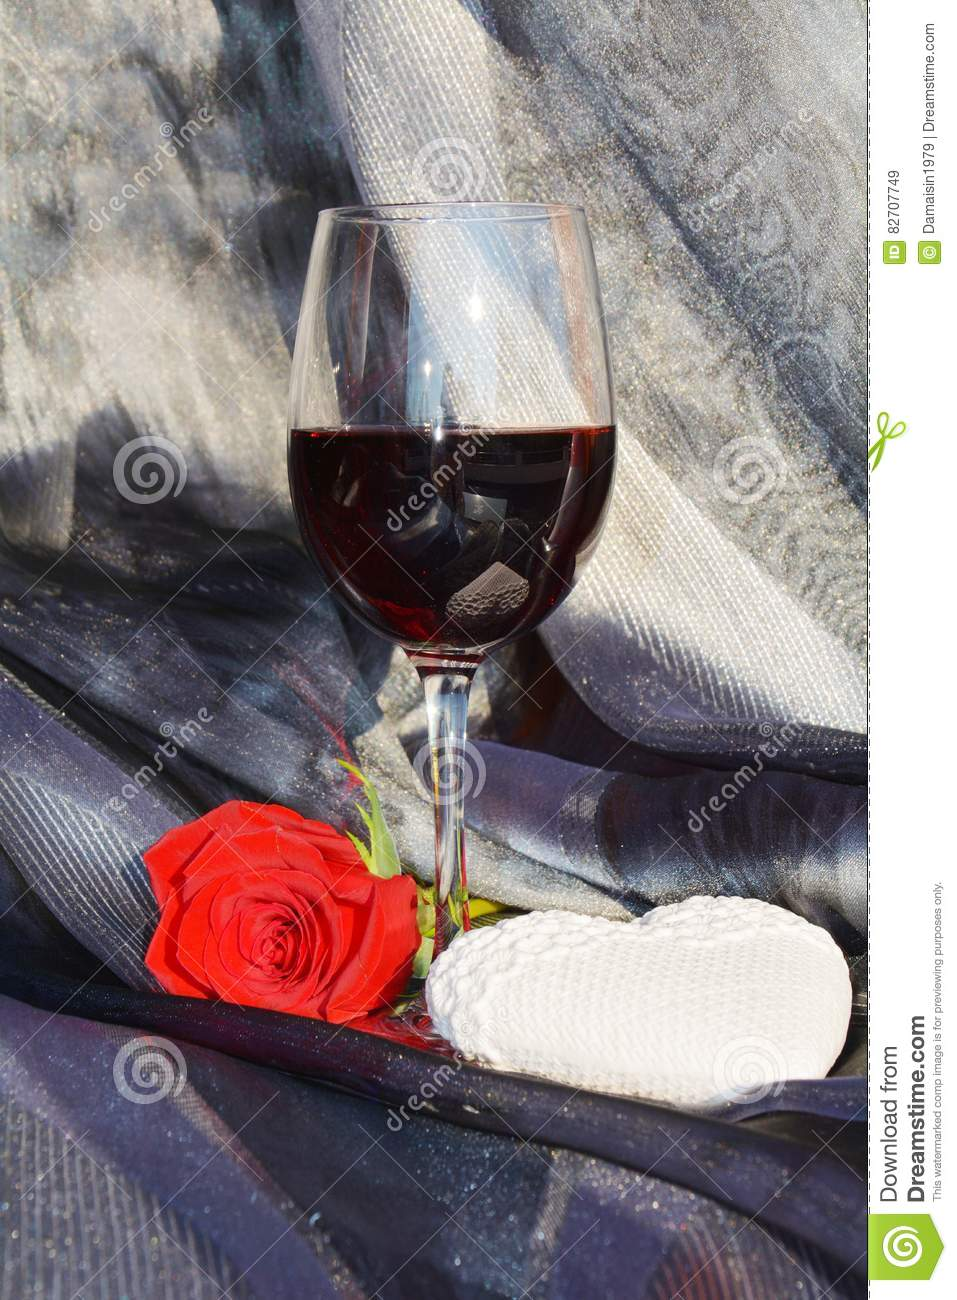 Rose, wine and heart